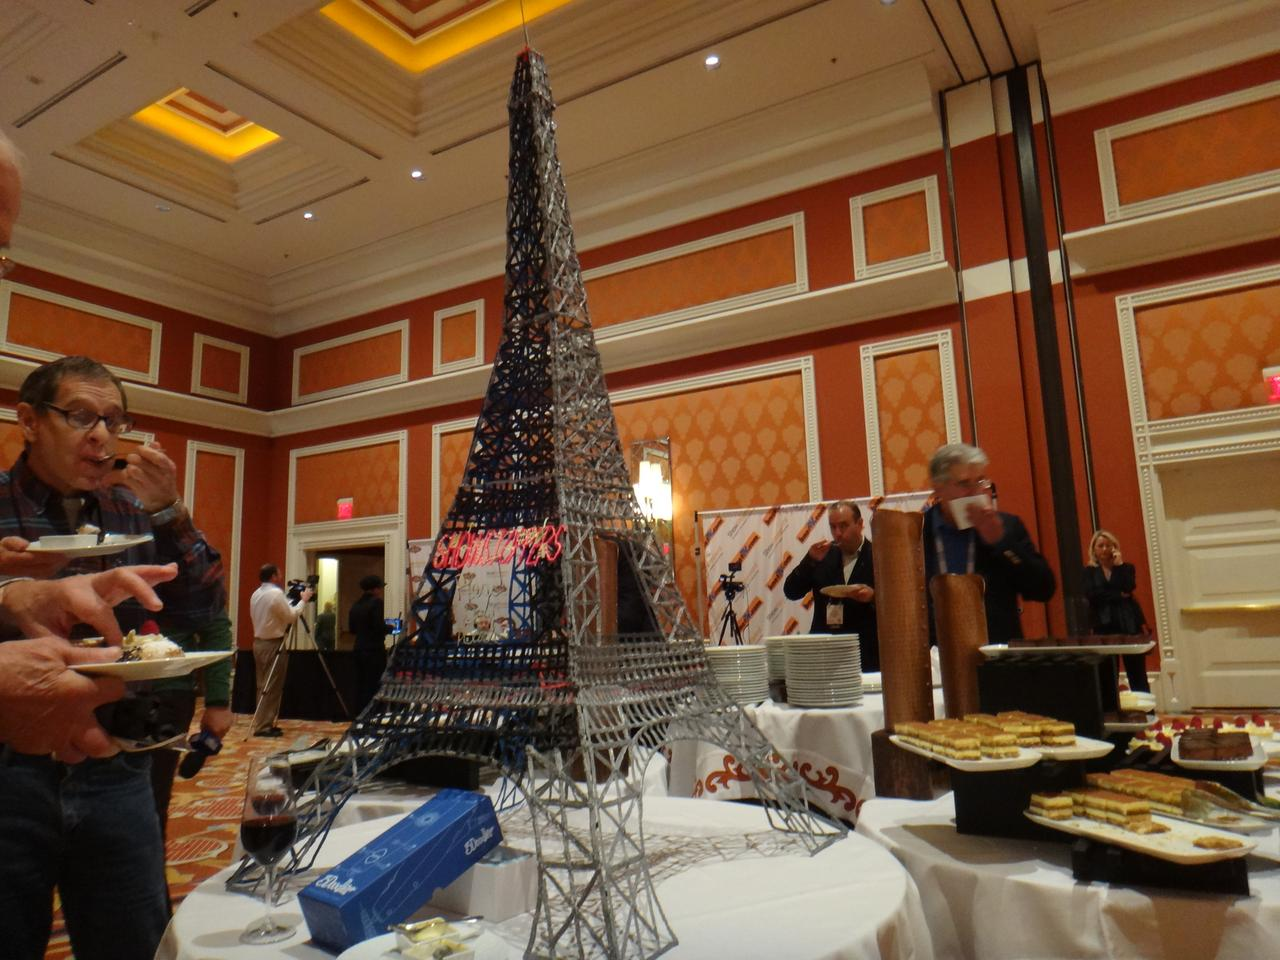 """The 3Doodler's """"pièce de résistance"""" was a massive recreation of the Eiffel Tower, which we were told involved combining multiple fragments together"""